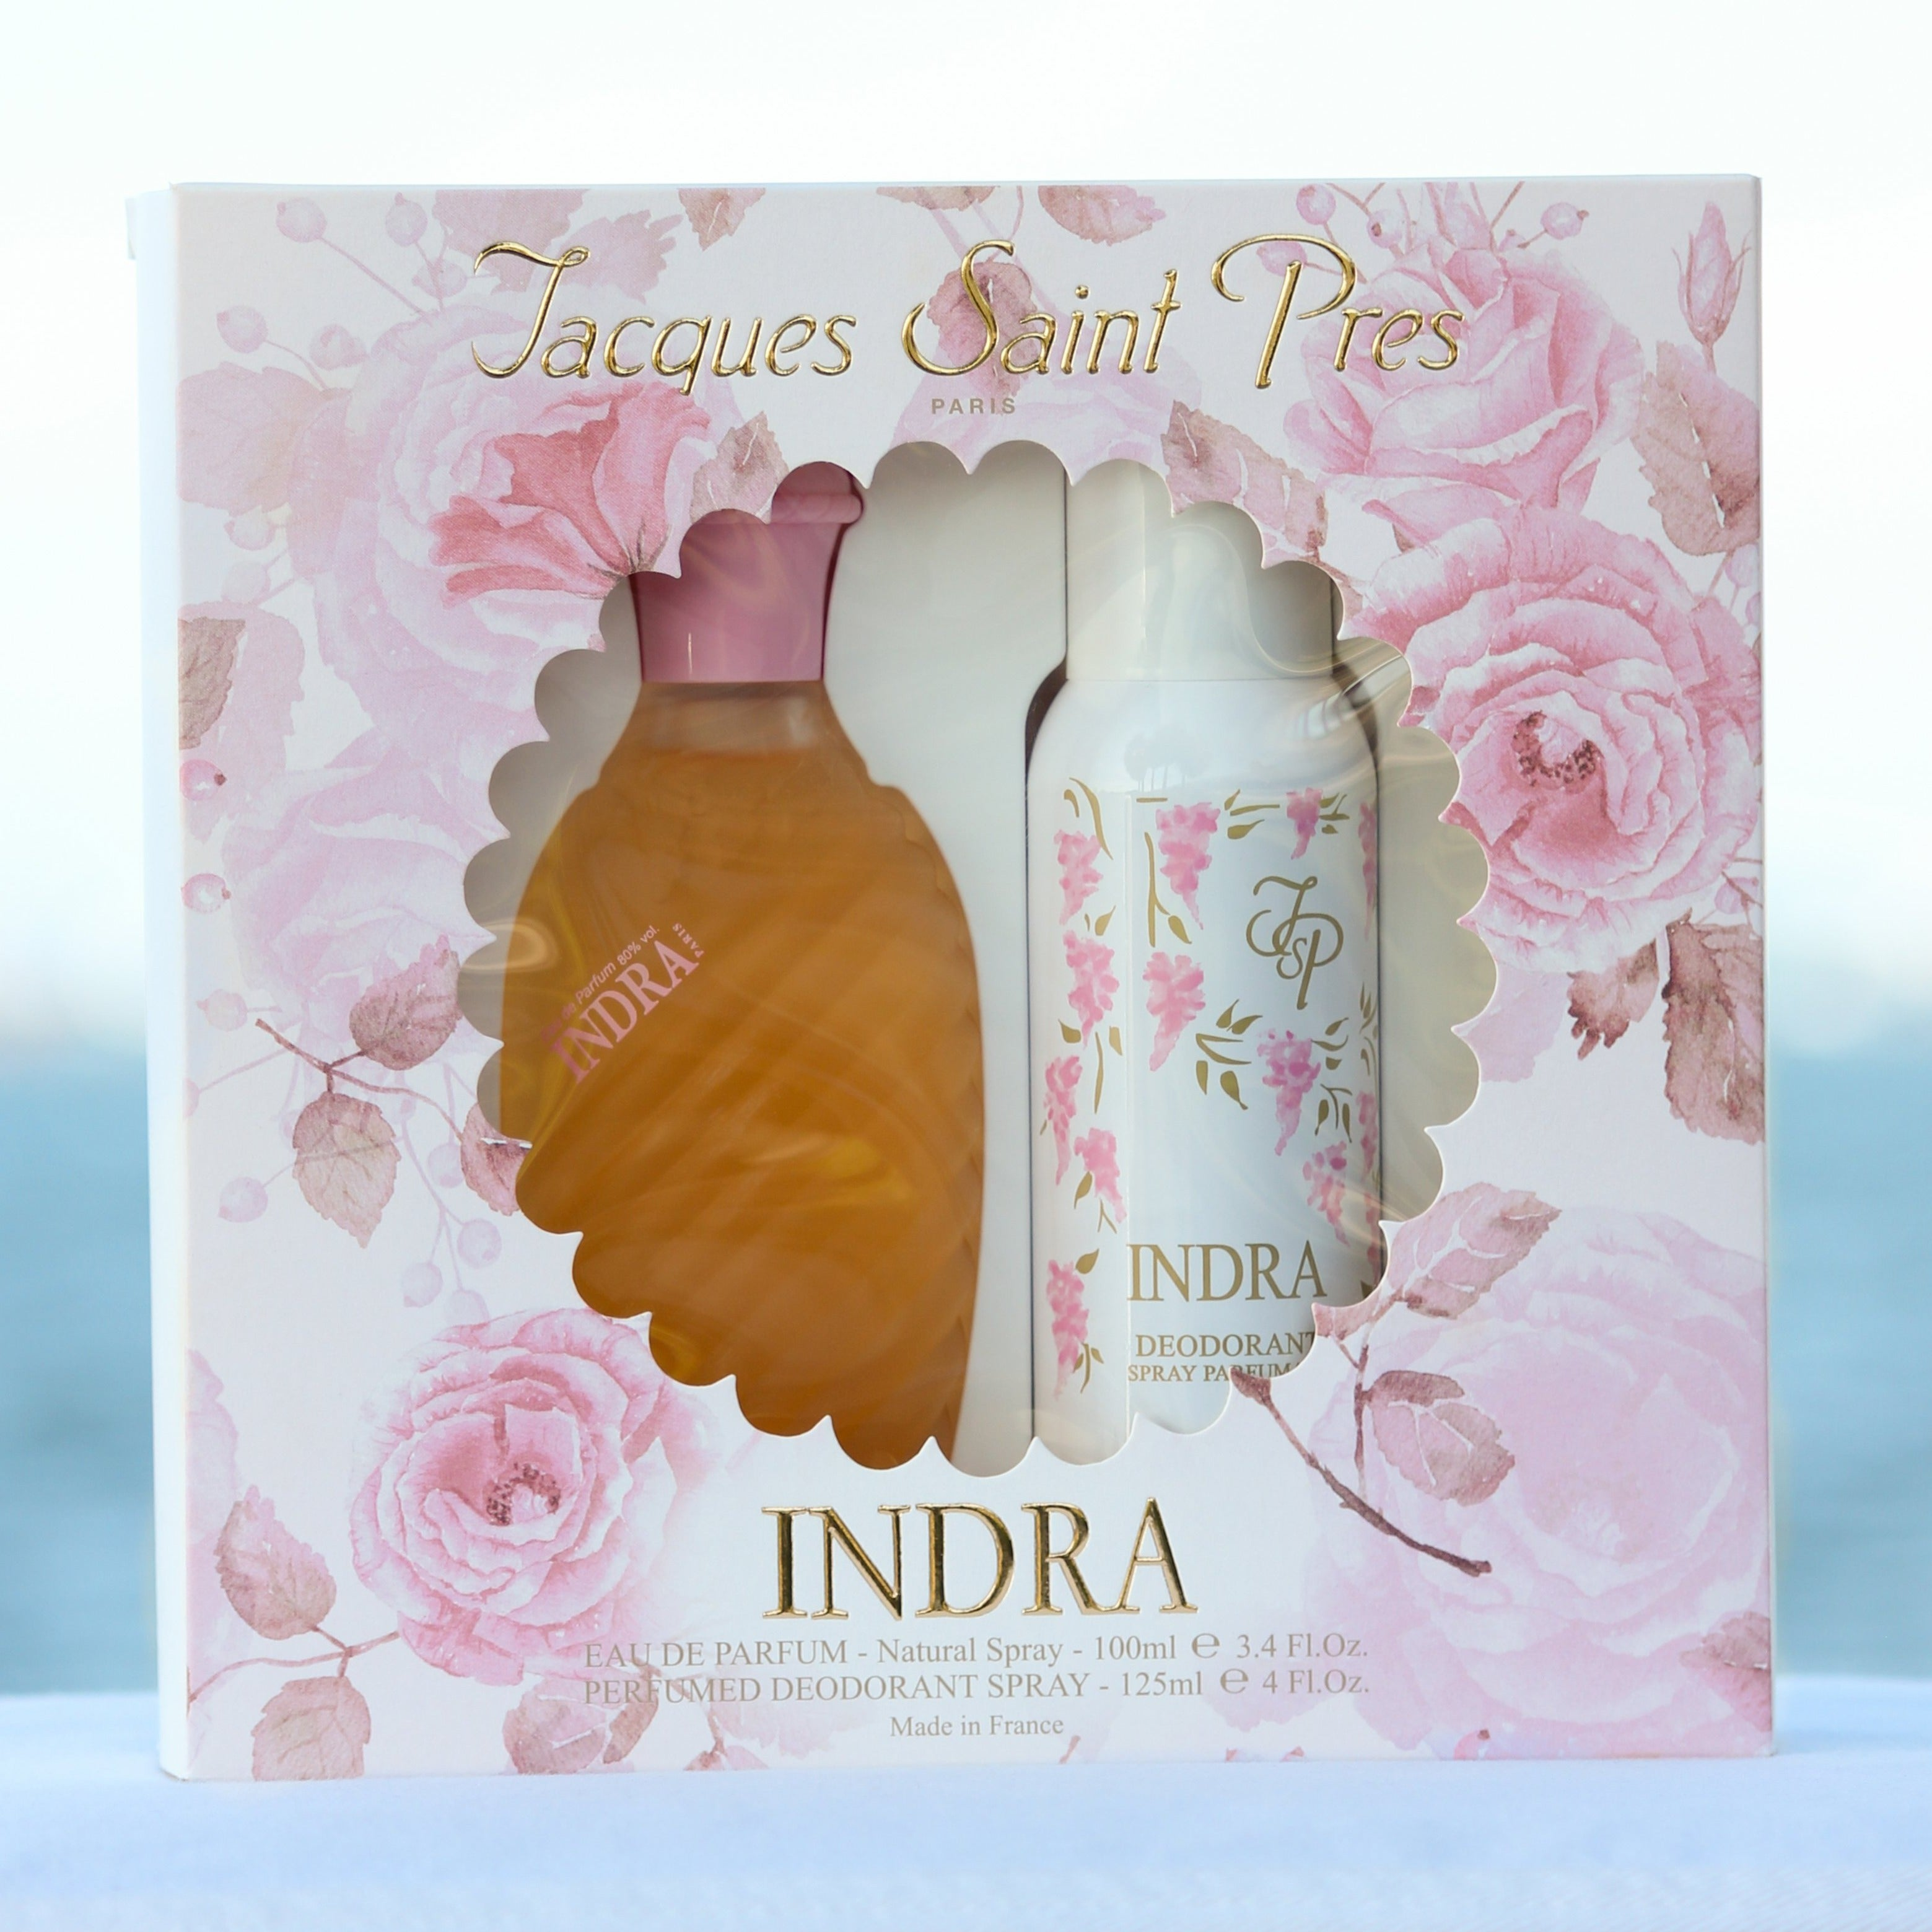 Jacques Saint Pres Indra Gift Set women's perfume 3.4 EDP and deodorant spray 4 oz in front of beach